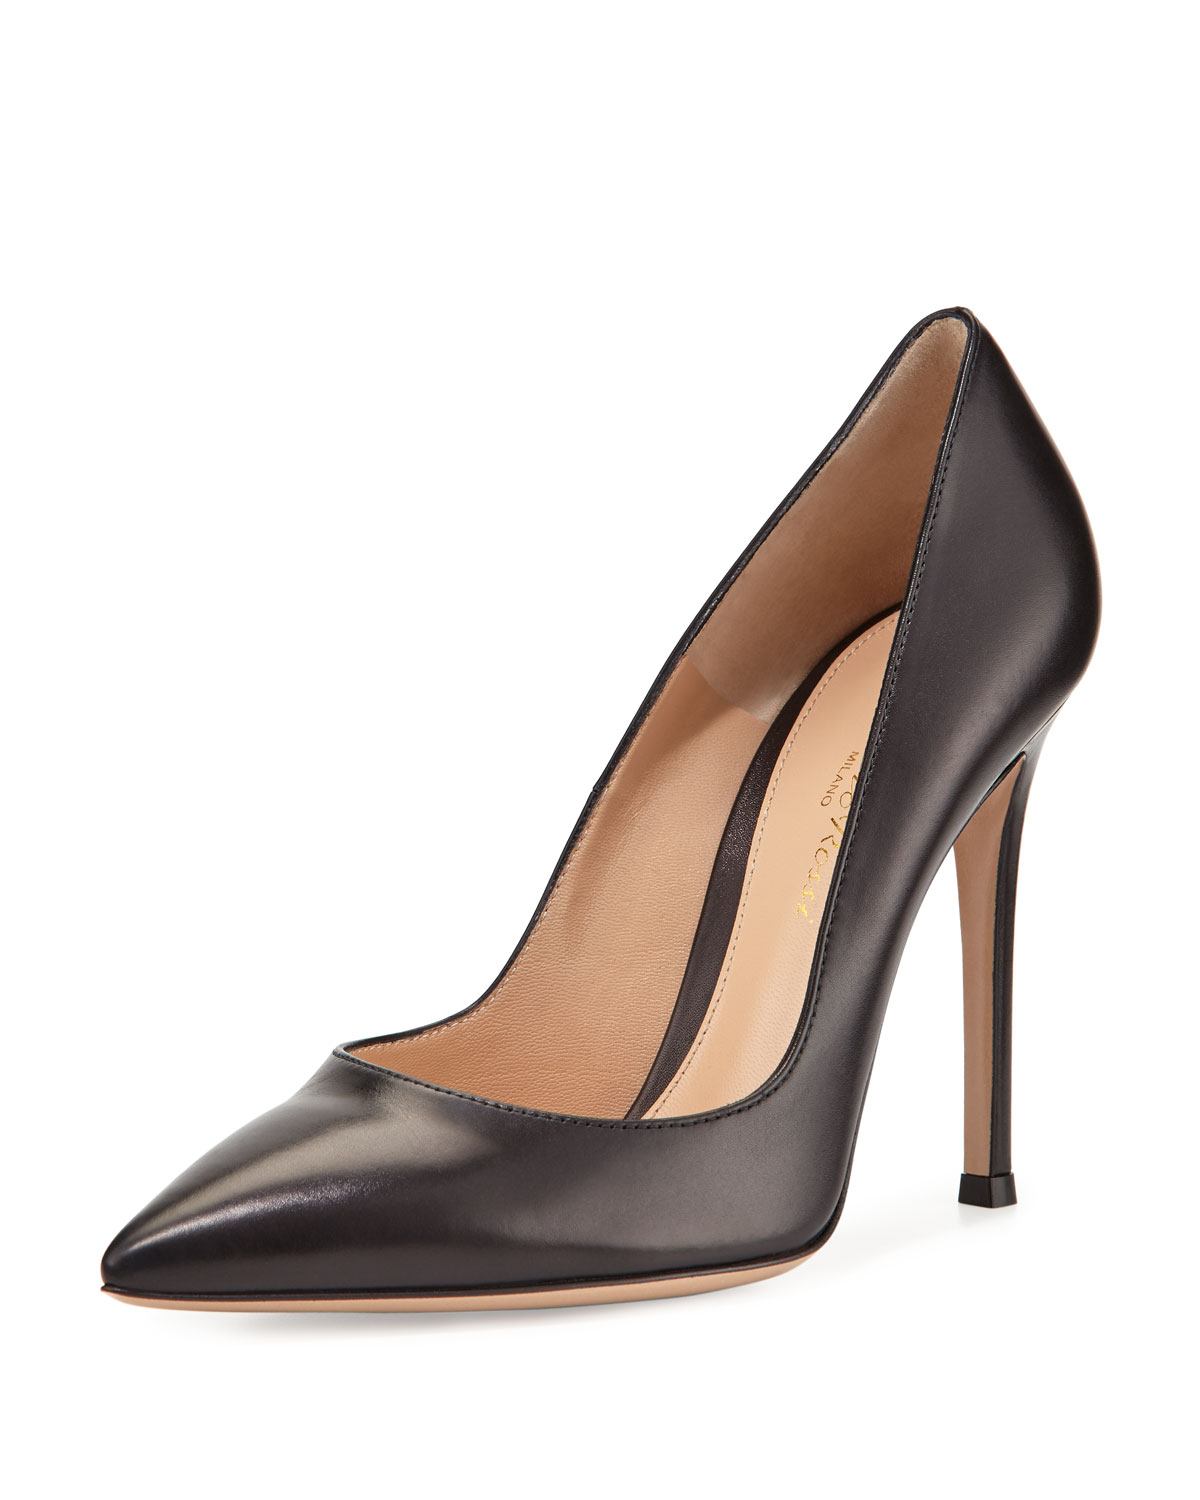 Gianvito 105mm Leather Pump, Black